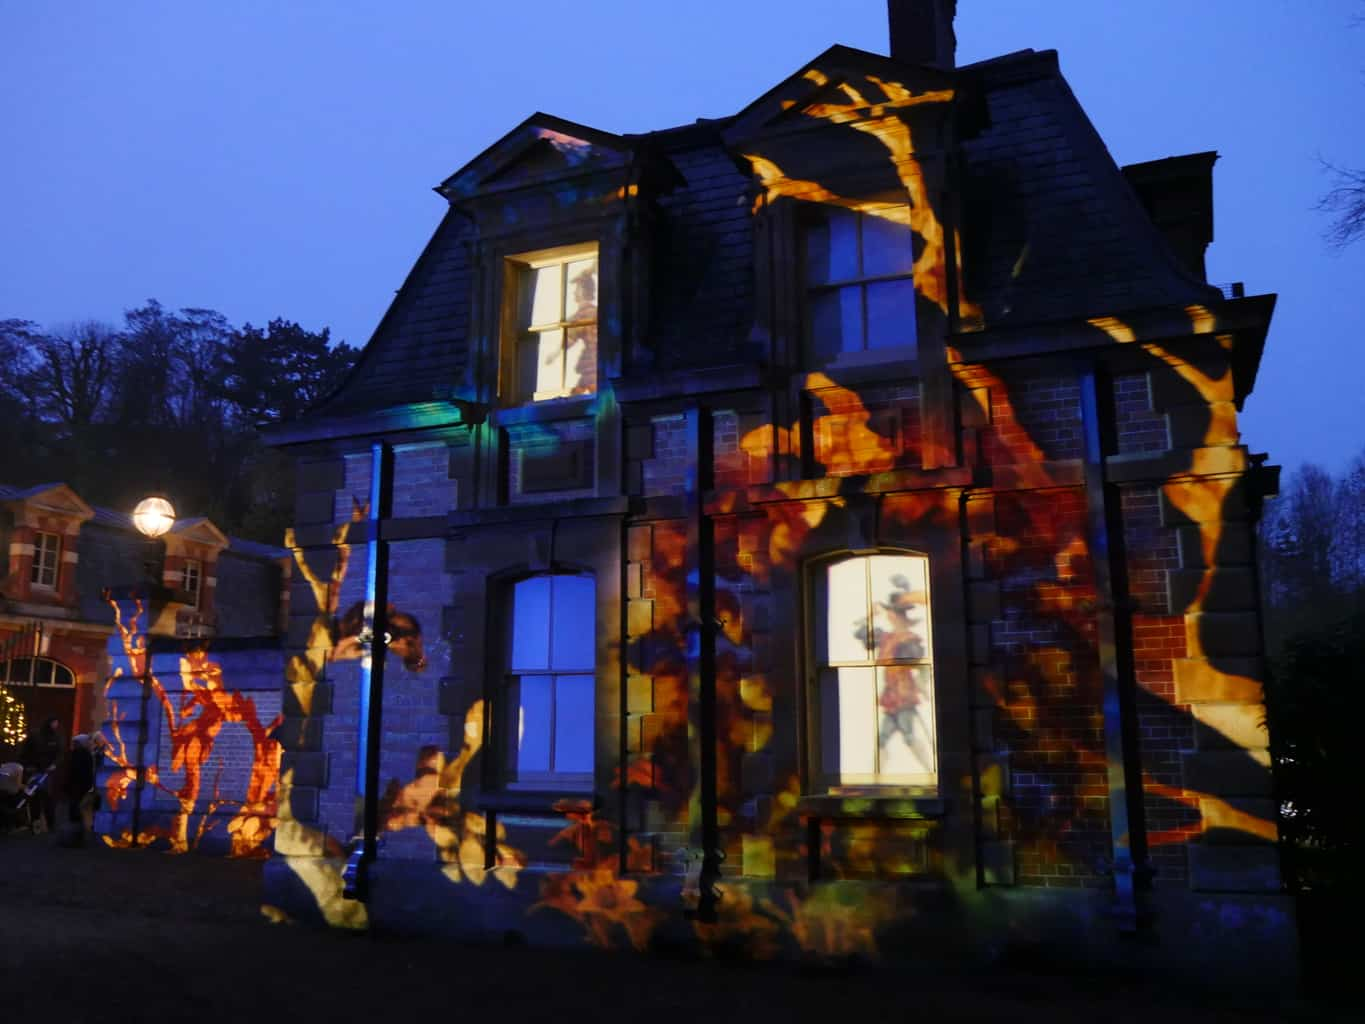 A projection on the stables at Waddesdon Manor at Christmas